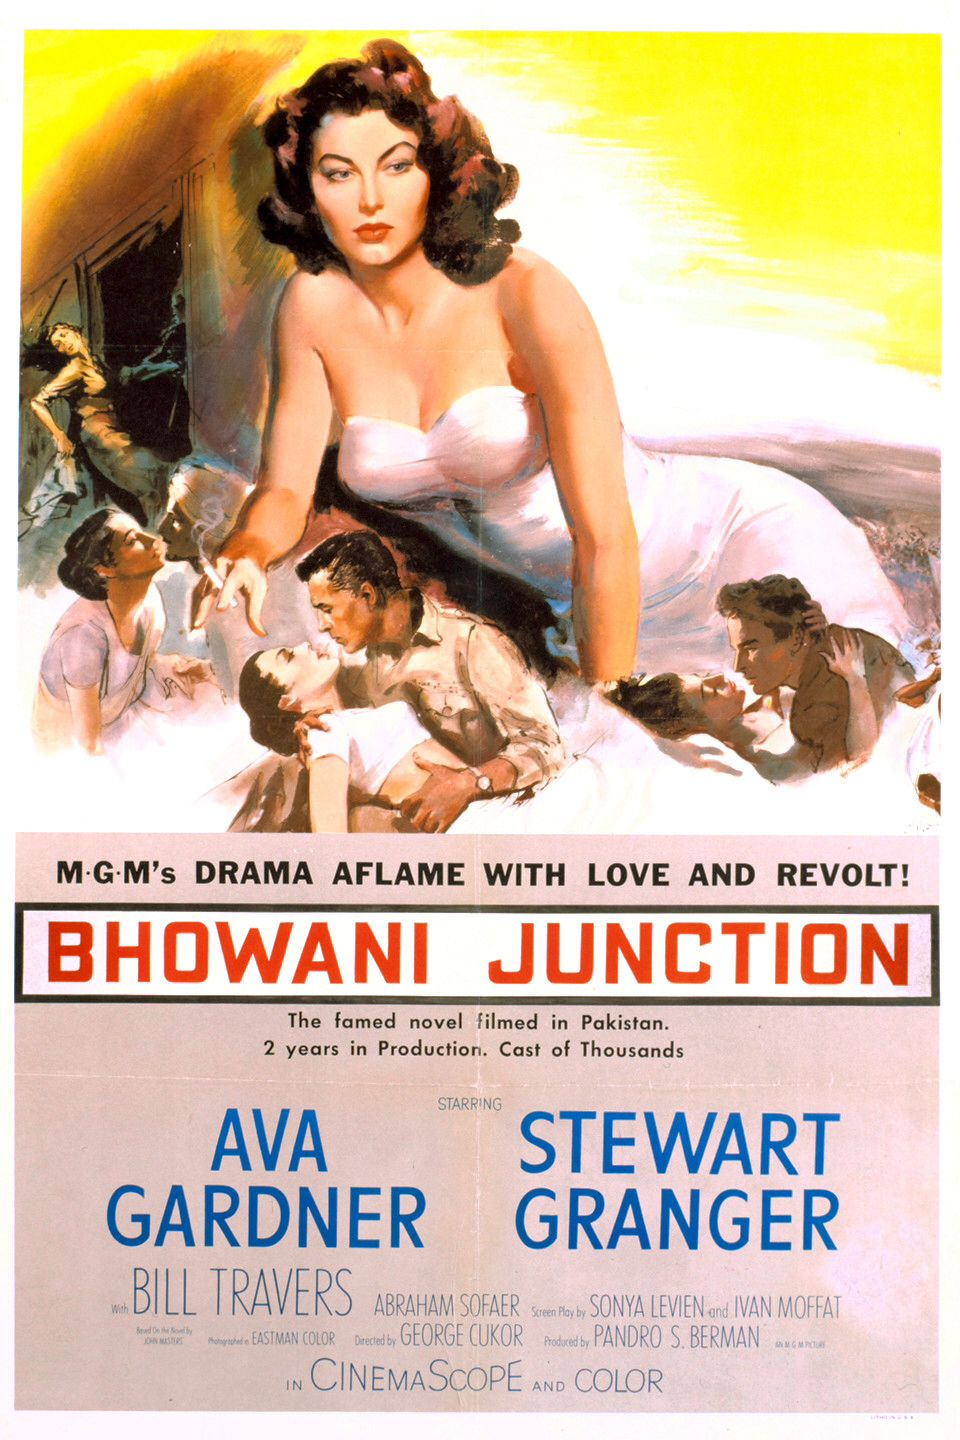 Pin By Michael Mcinery On Ava Lavinia Gardner Movie Posters Old Movie Posters Film Posters Vintage